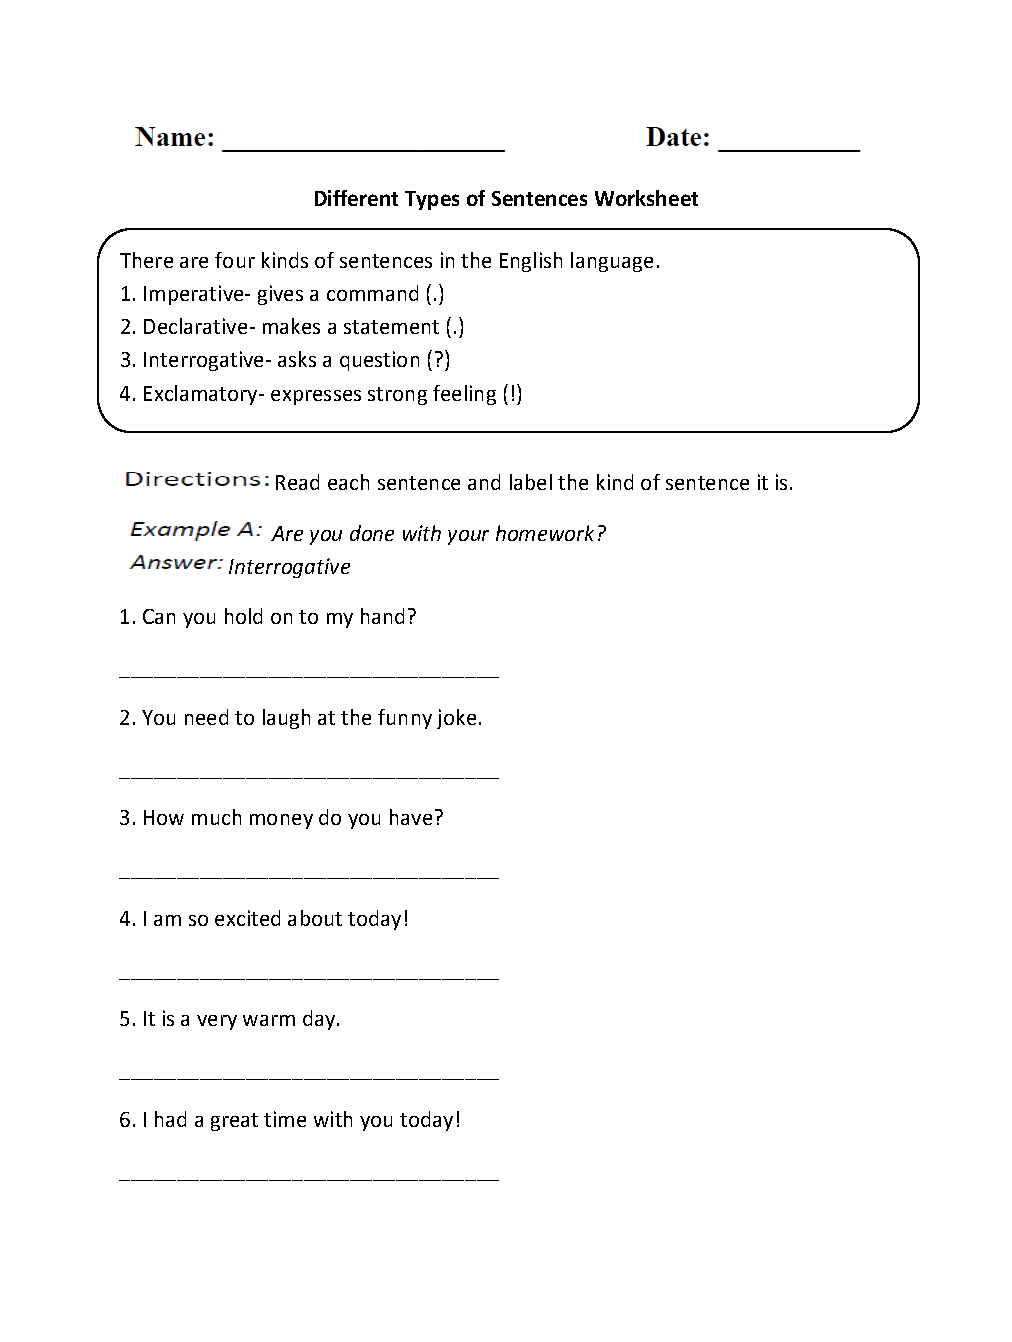 Printables Declarative And Interrogative Sentences Worksheets 4th Grade sentences worksheets types of different worksheet